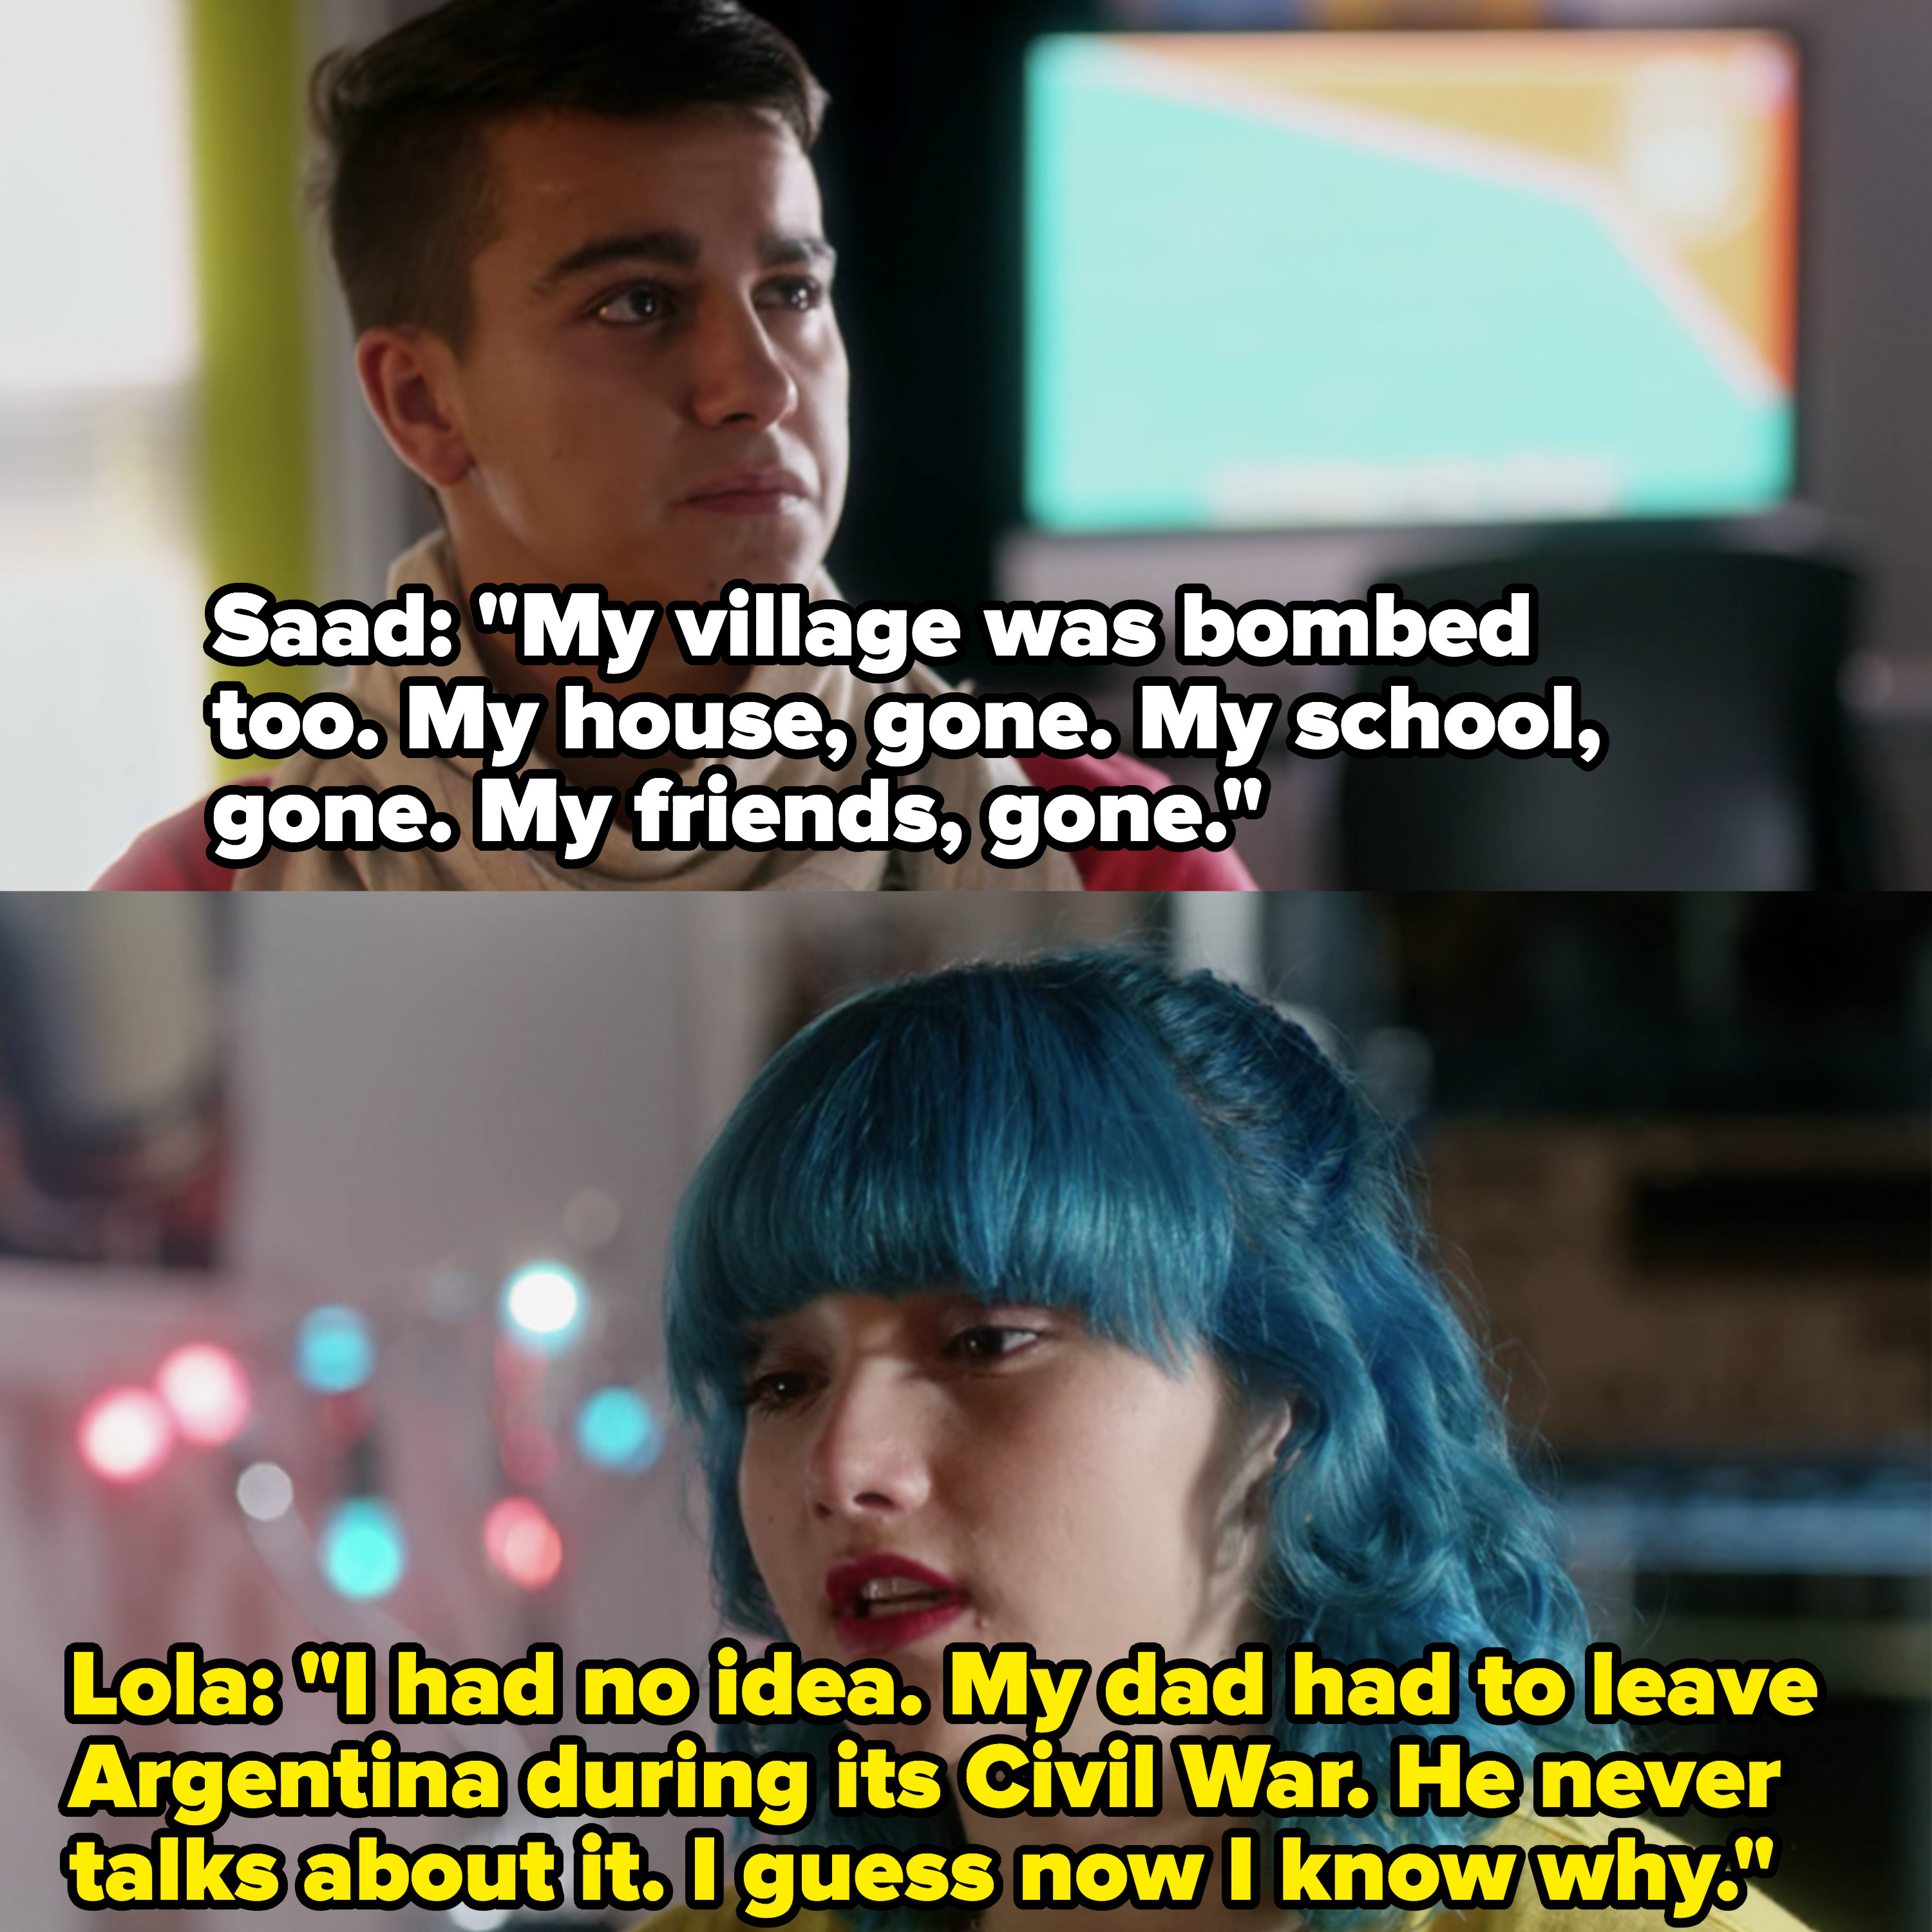 Saad talks about how his village was bombed and Lola says her dad had to leave Argentina during the Civil War